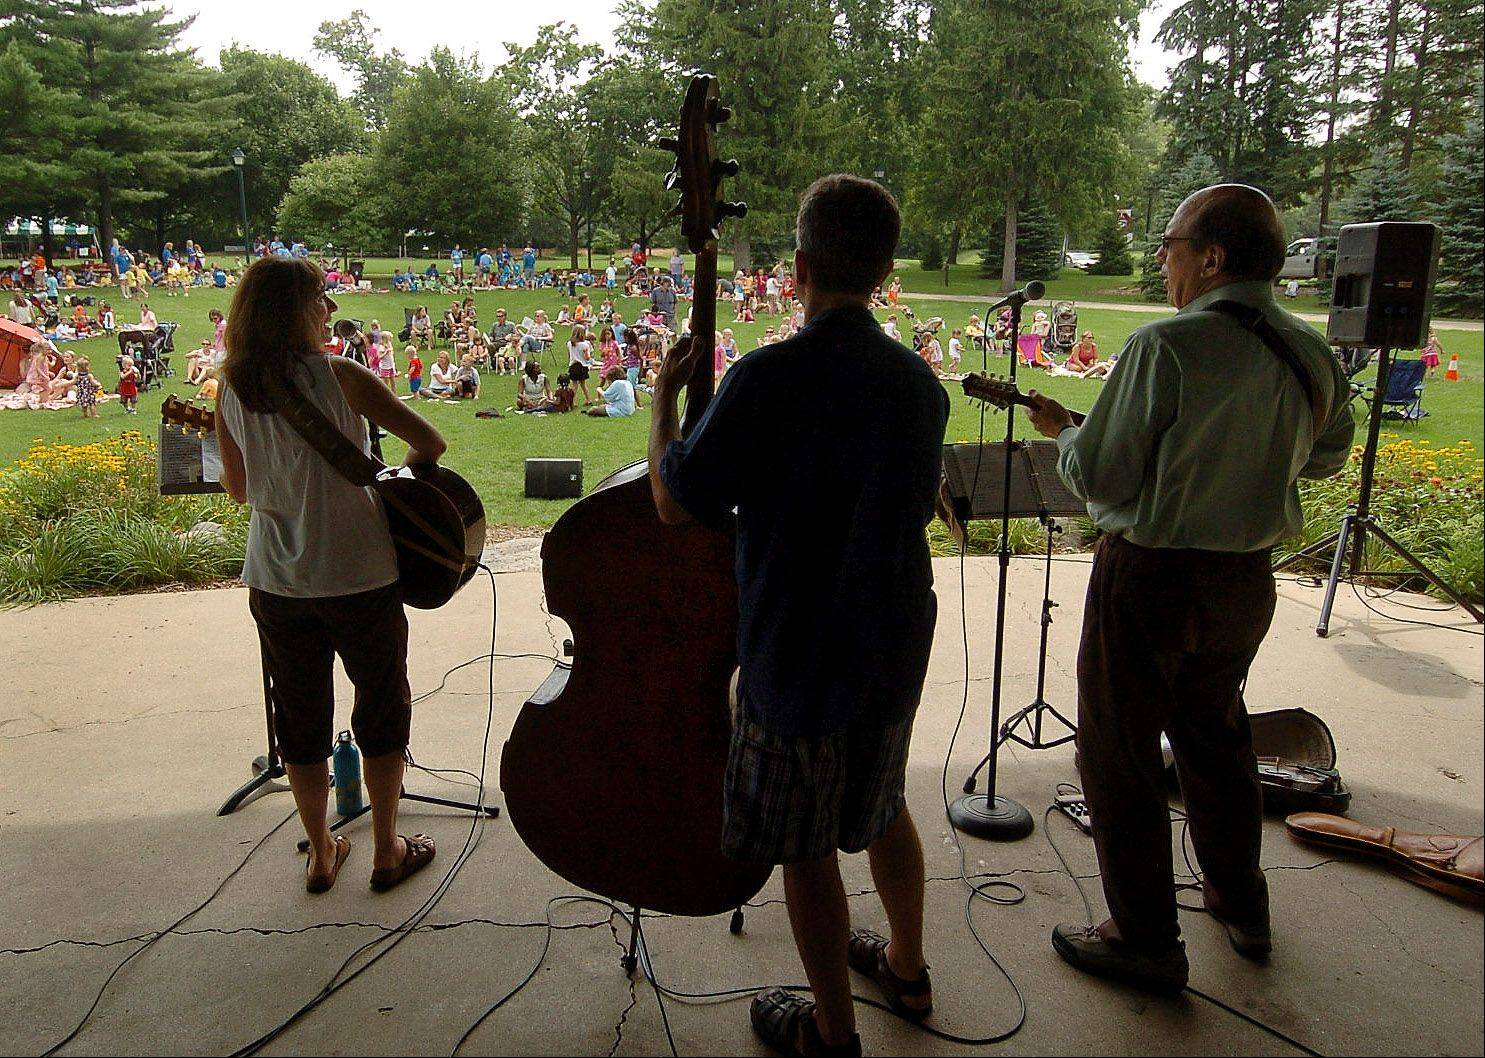 Children's performer Karen Jordan, left, along with Jim Cox, center, and Don Stiernberg perform at Viking Park for the final Children's Concerts show sponsored by the Gurnee Park District.